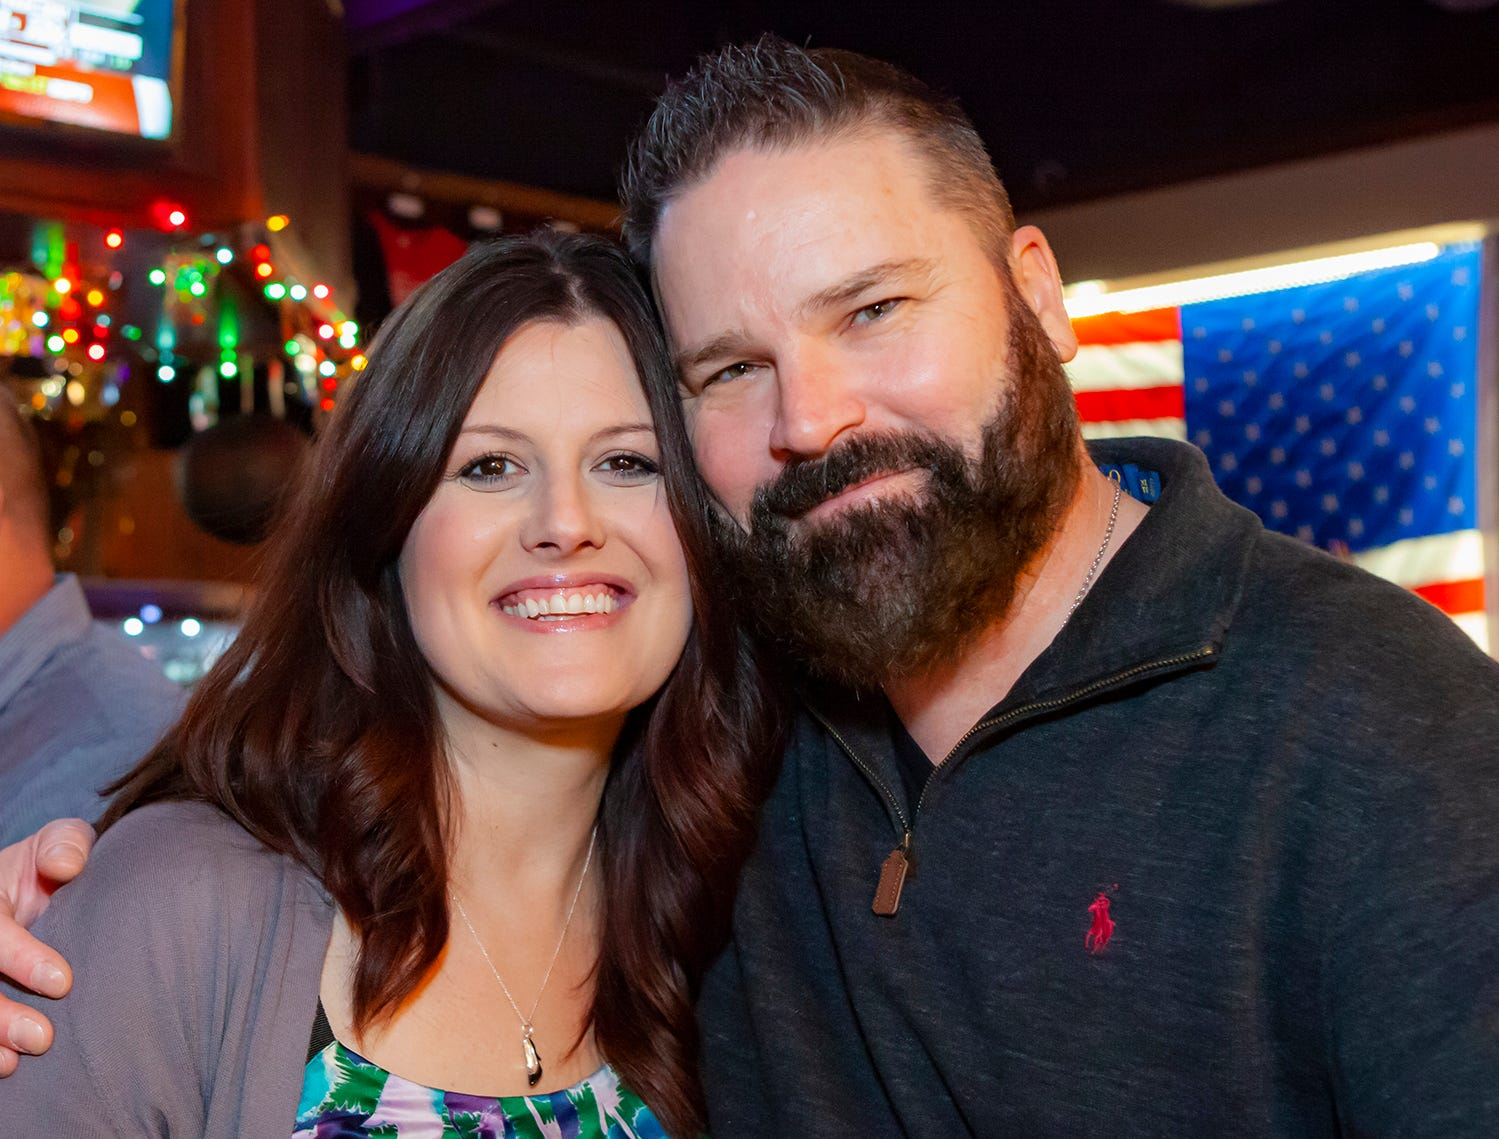 Wendy Patton and Michael Verner at the New Year's party at Hank's Honky Tonk in Murfreesboro.